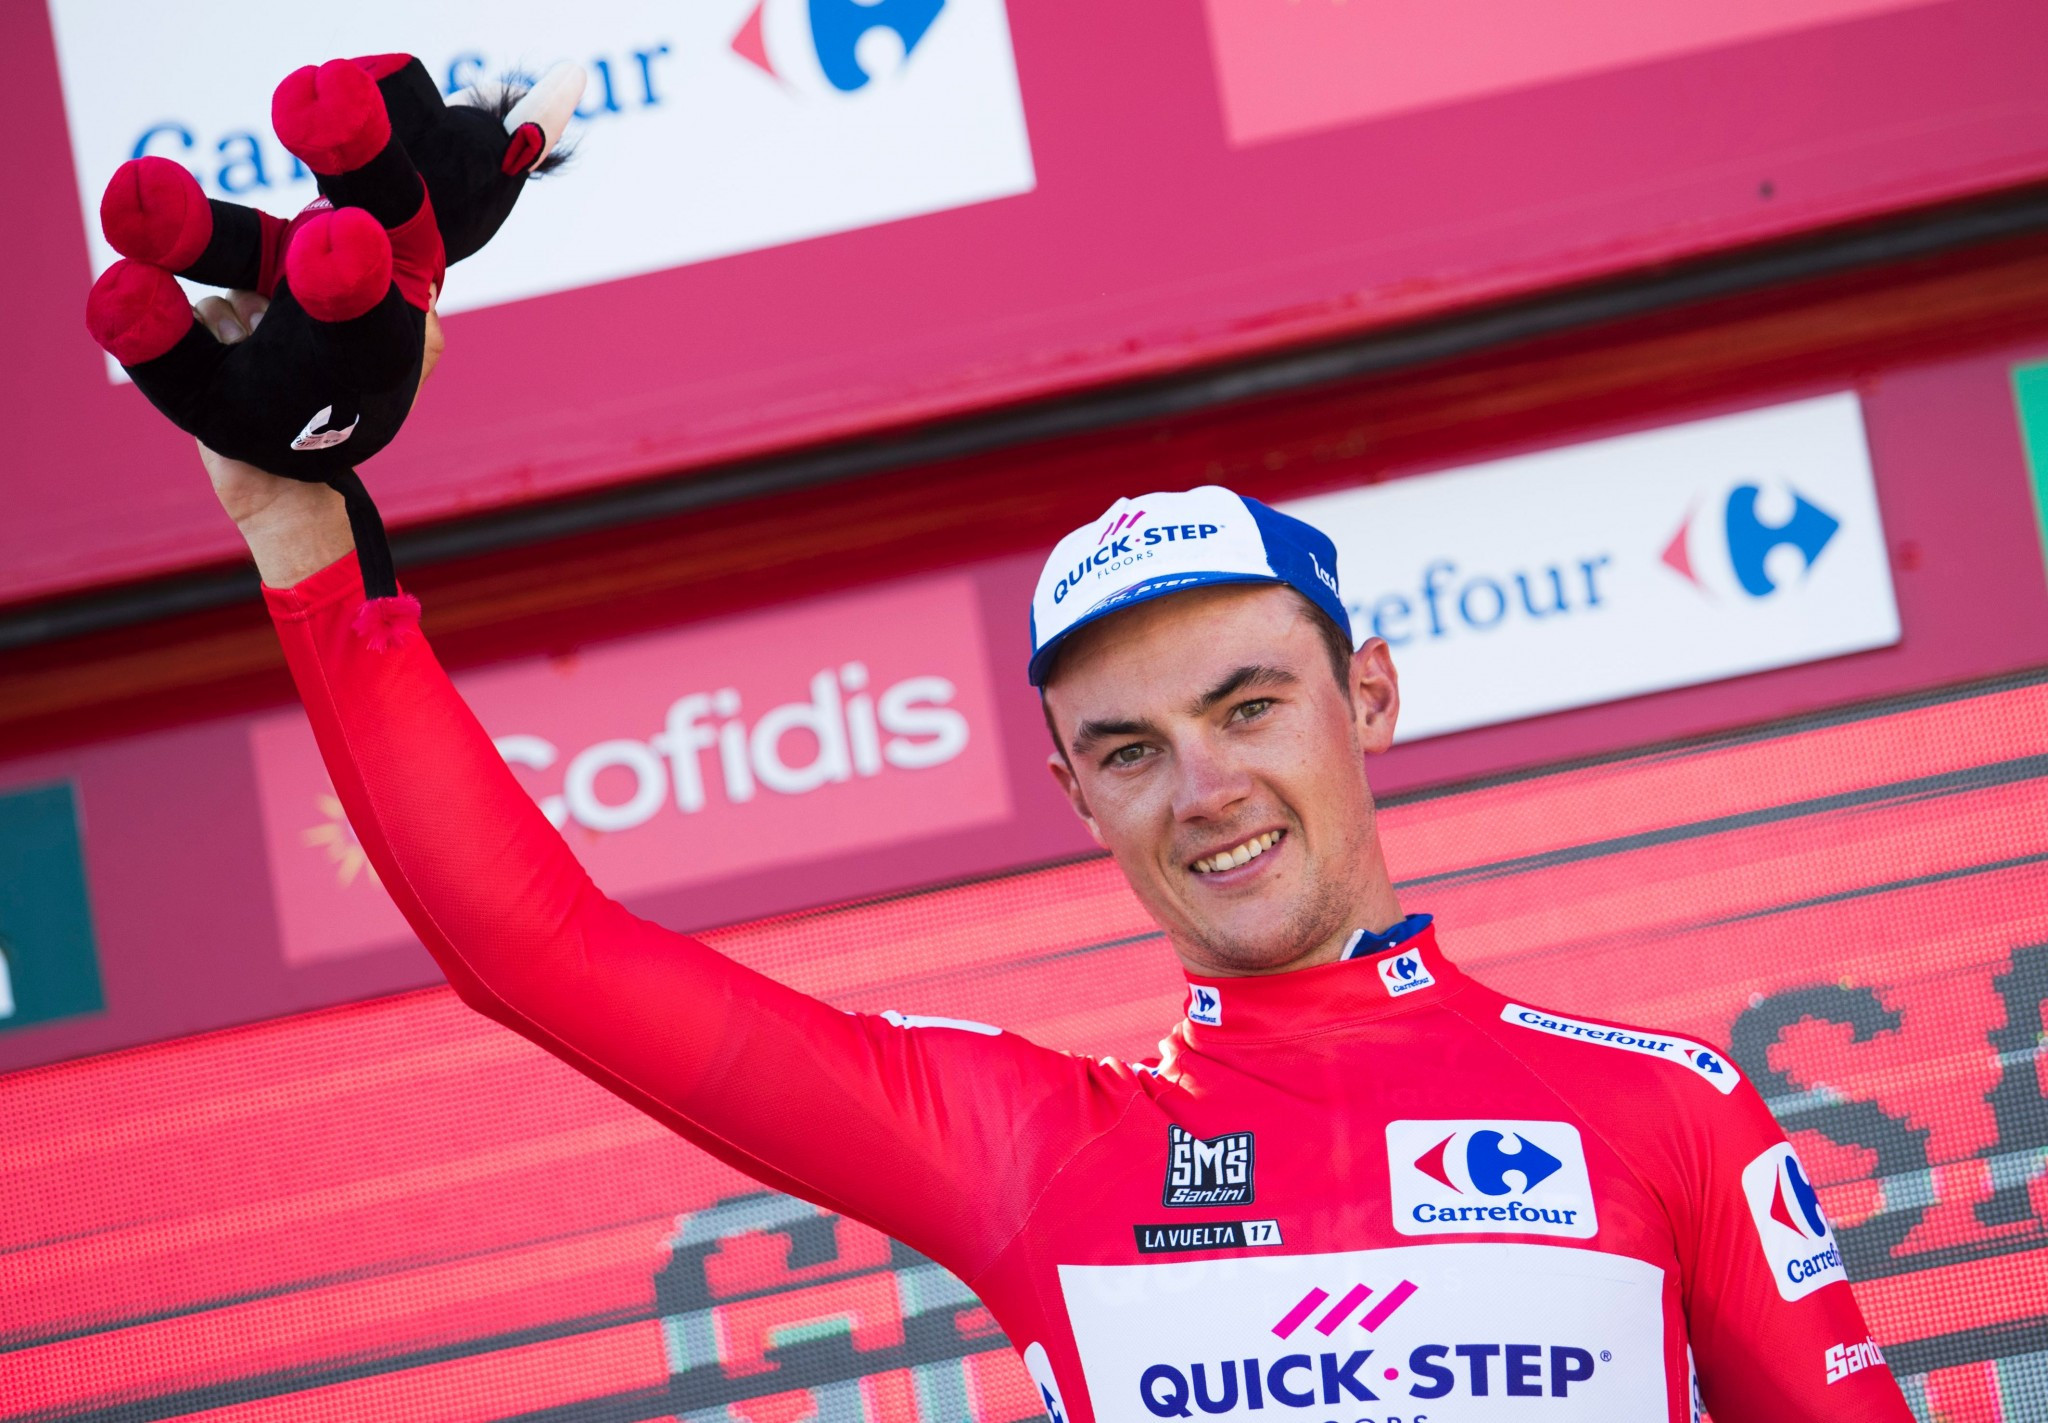 Lampaert makes well-timed attack to grasp hold of Vuelta red jersey